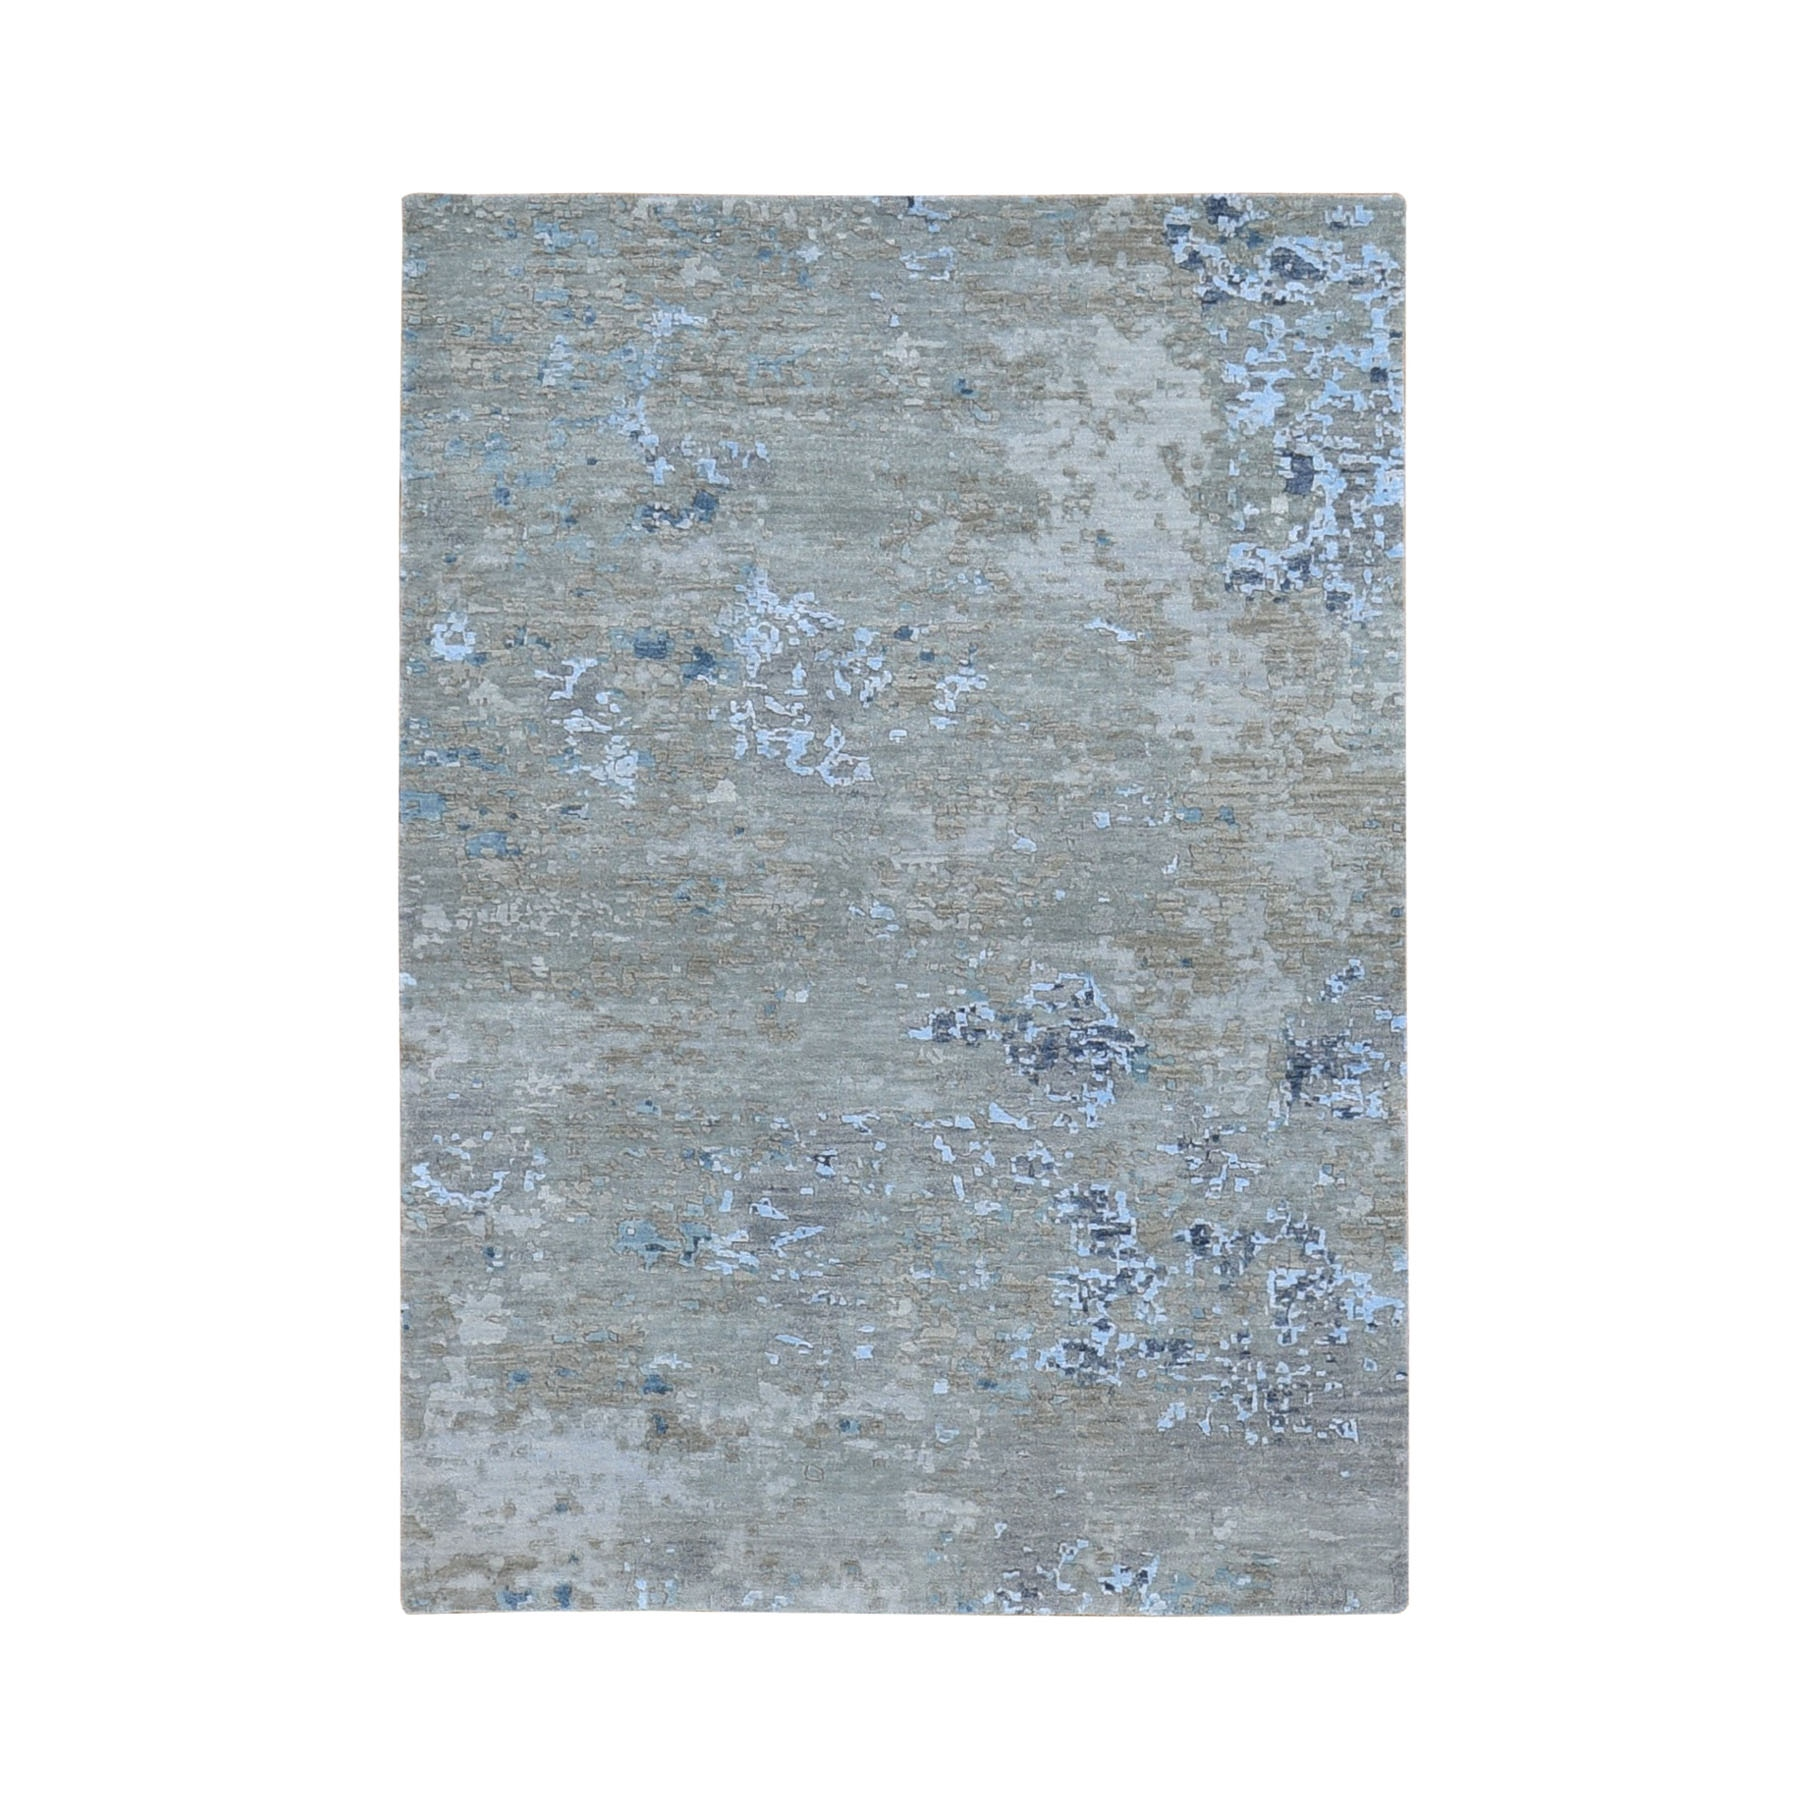 4'x6' Abstract Design Wool And Silk Denser Weave Hand Woven Modern Rug